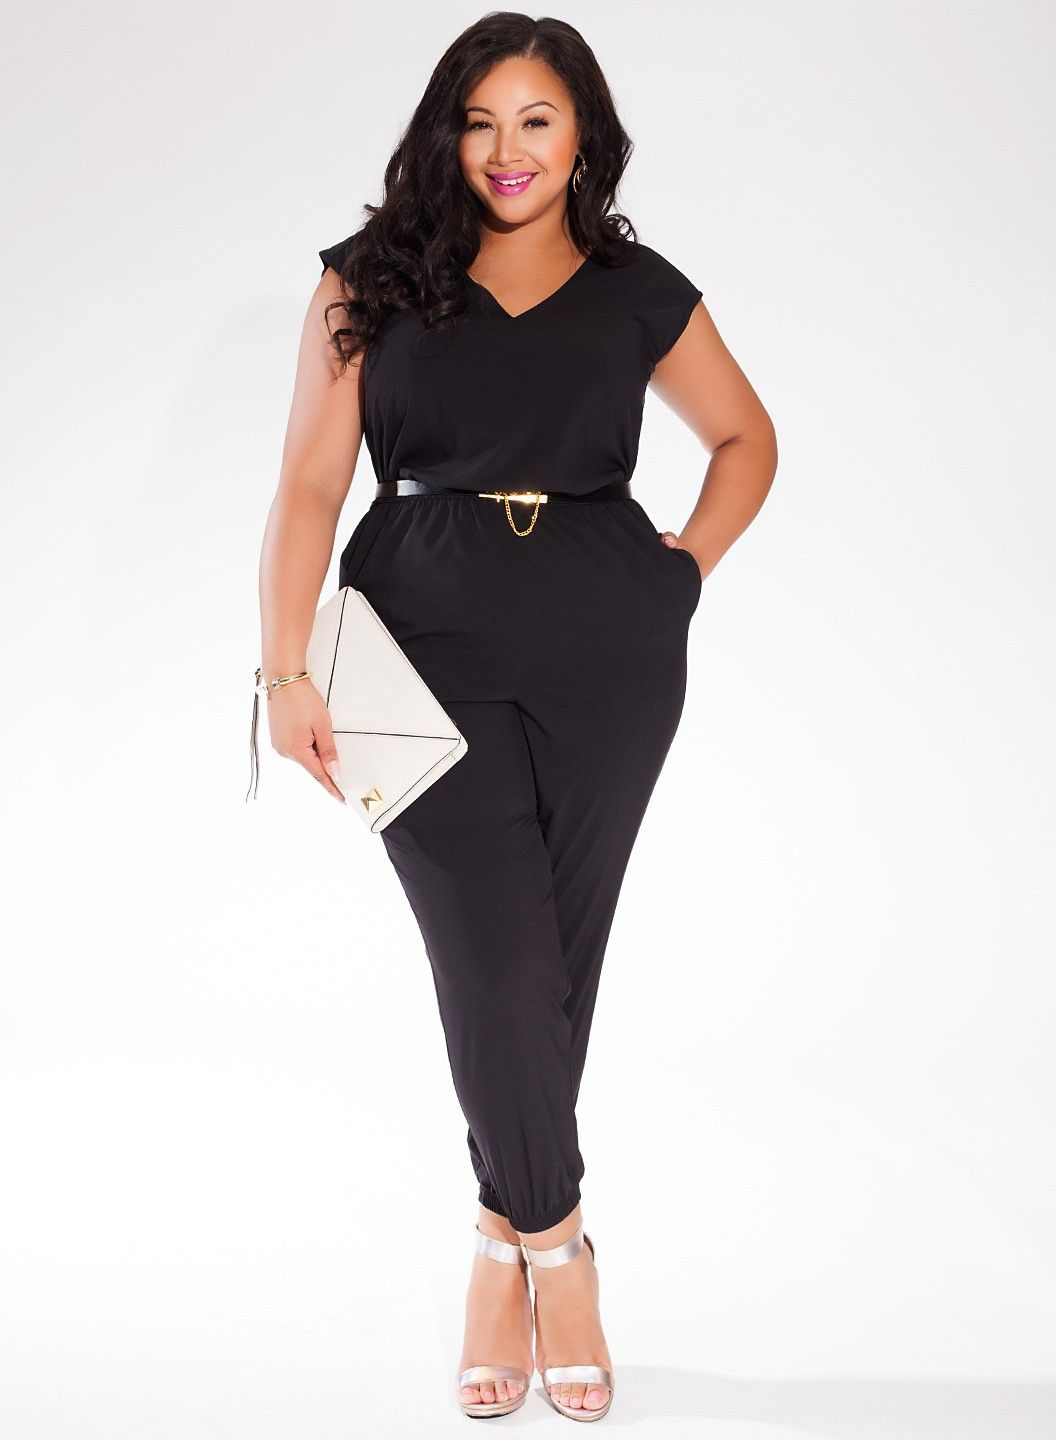 plus size black catalina jumpsuit igigi unique womens. Black Bedroom Furniture Sets. Home Design Ideas